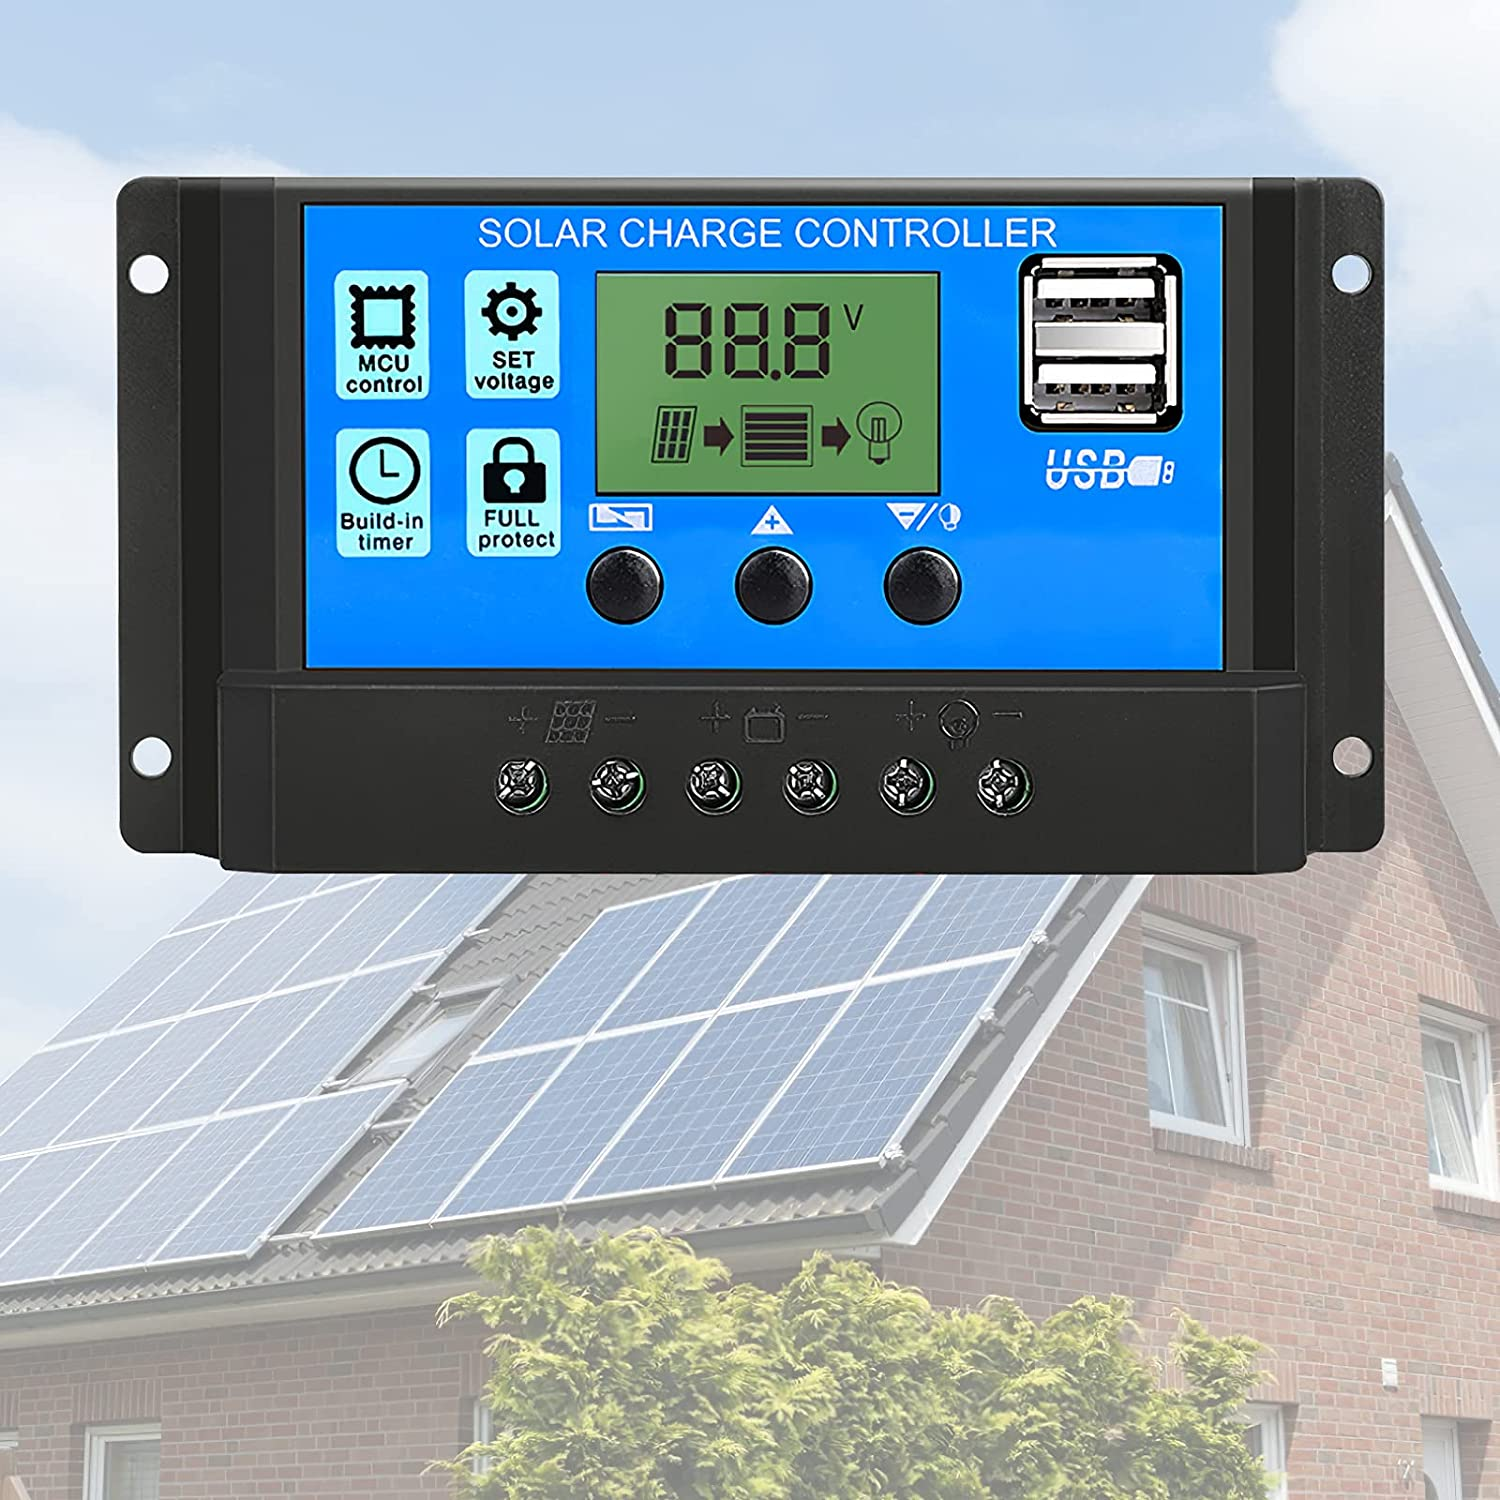 20A Solar Charge Controller ,12V/24V Solar Panel Controller Battery Intelligent Regulator with USB Port Display,Adjustable Parameter Backlight PWM Auto LCD Display and Timer Setting ON/Off Hours